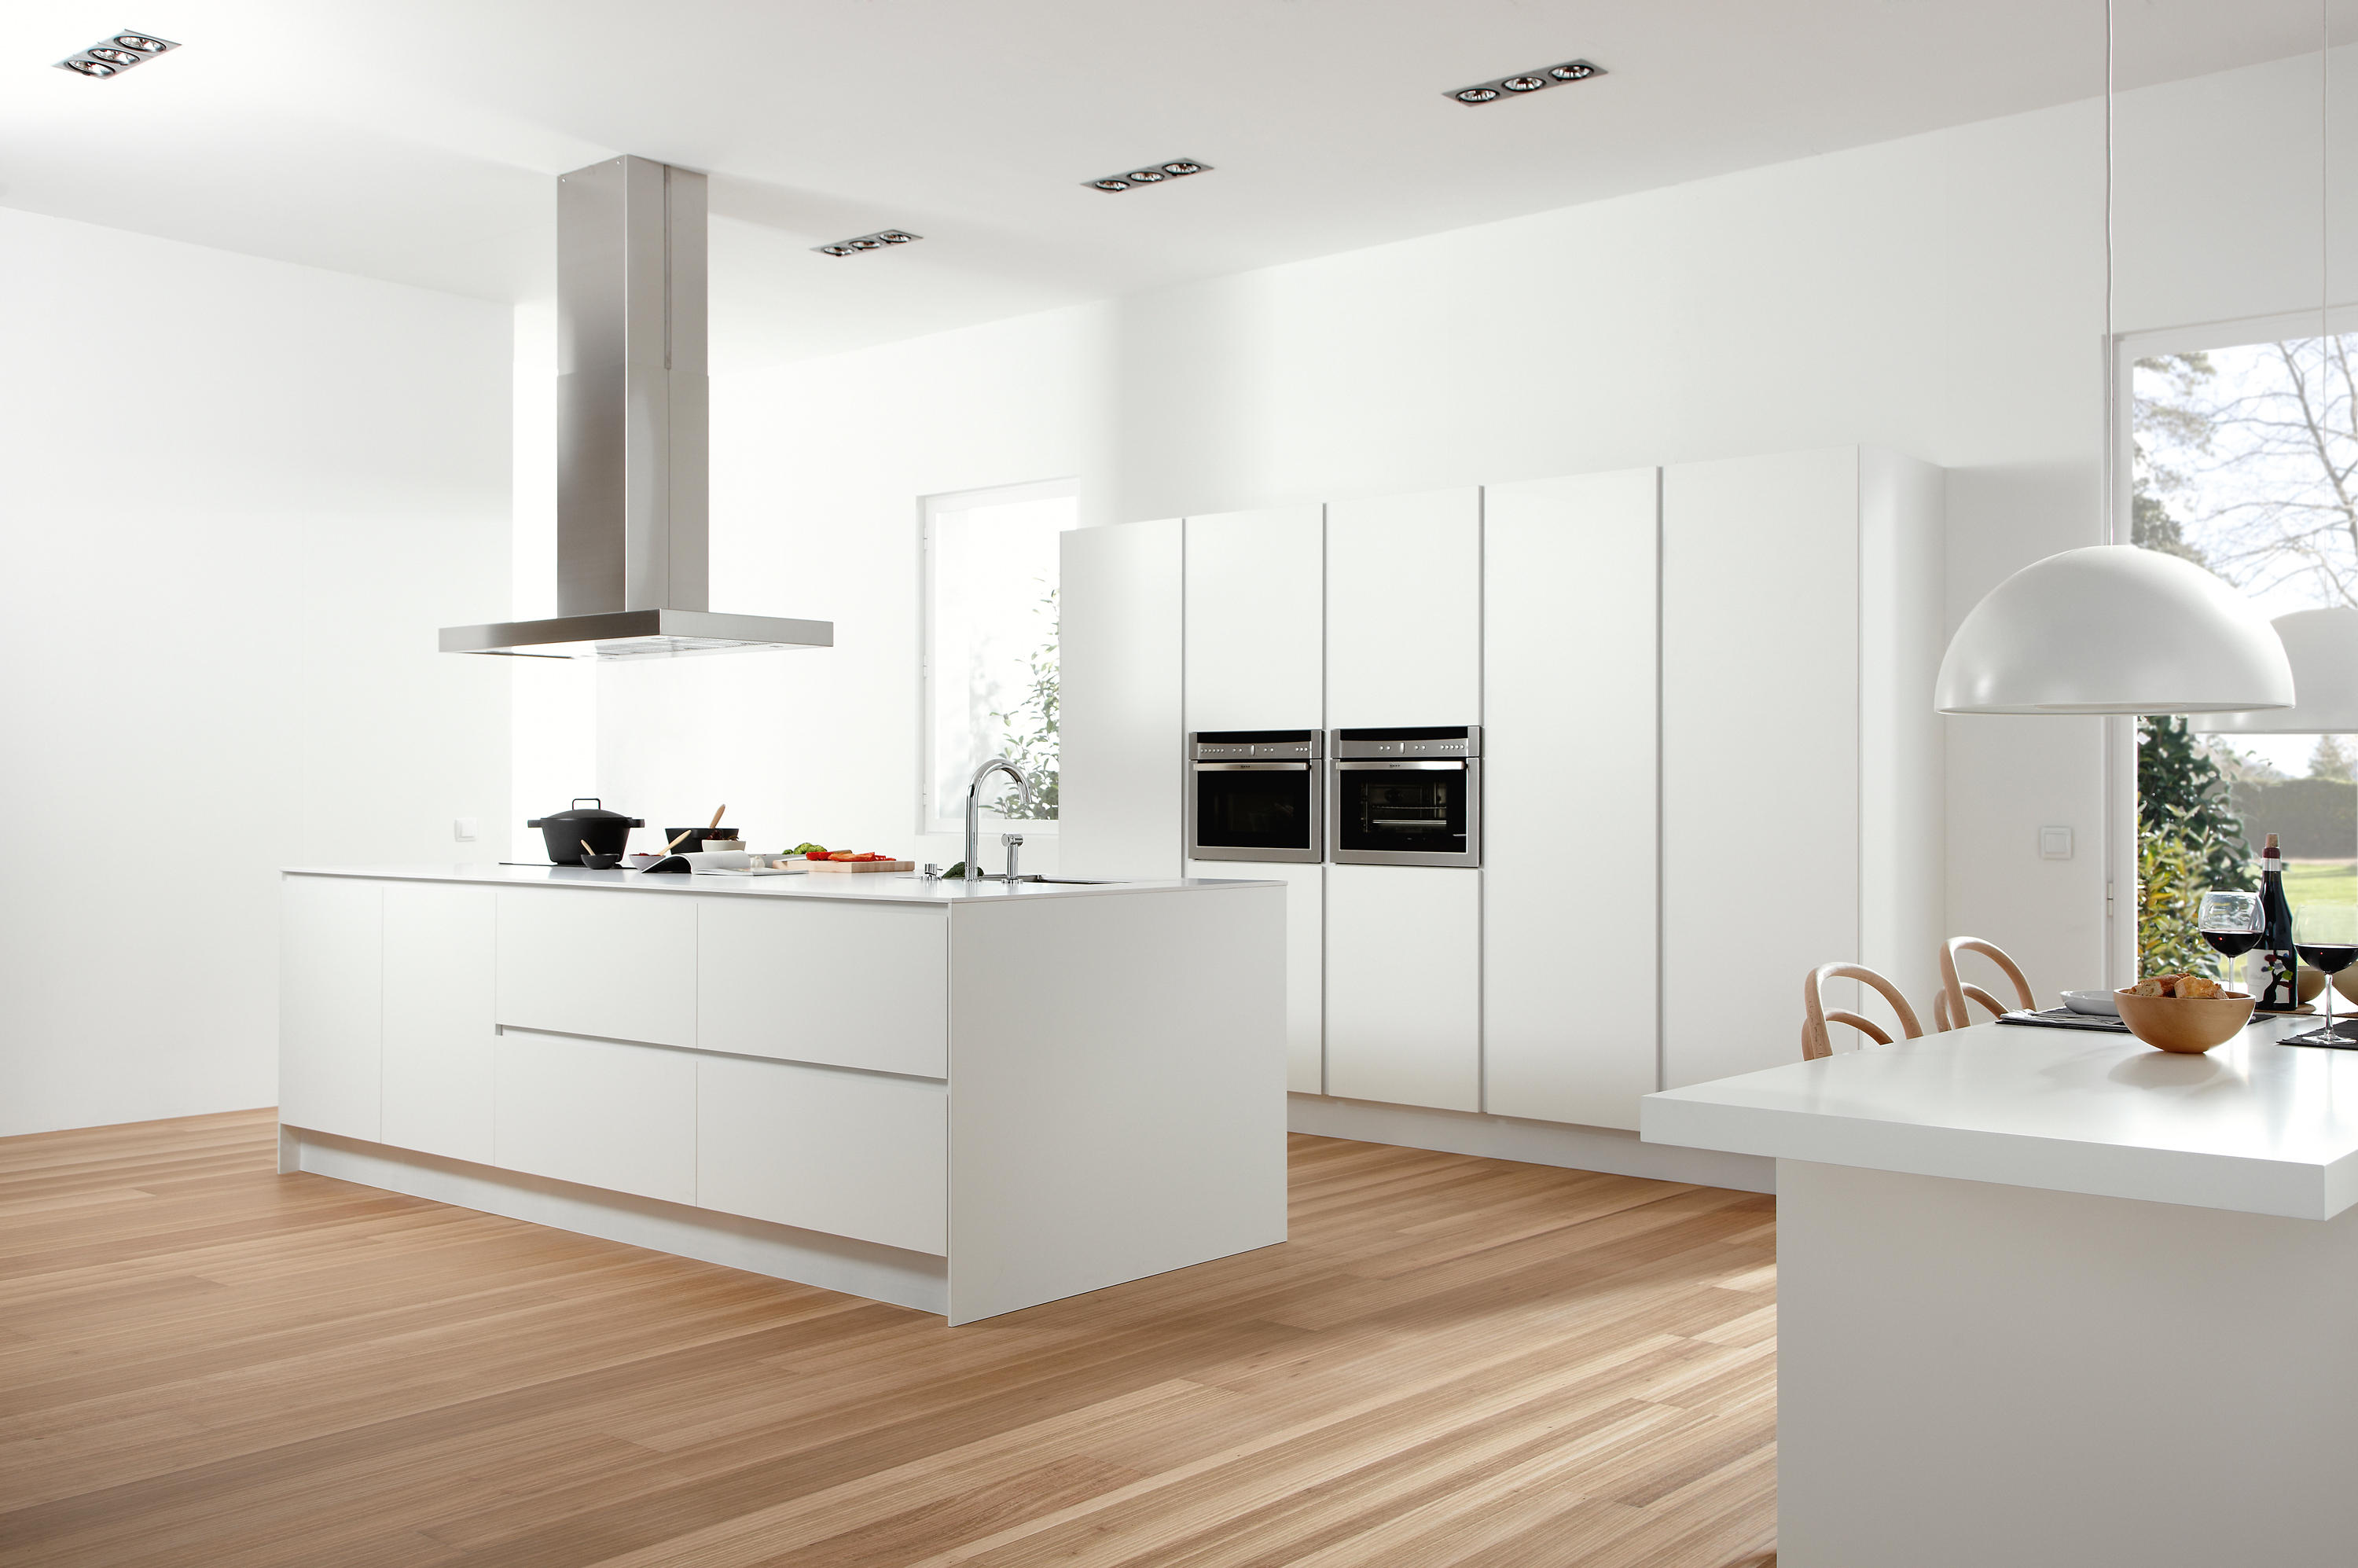 Cocinas Dica Serie 45 Polar White Island Kitchens From Dica